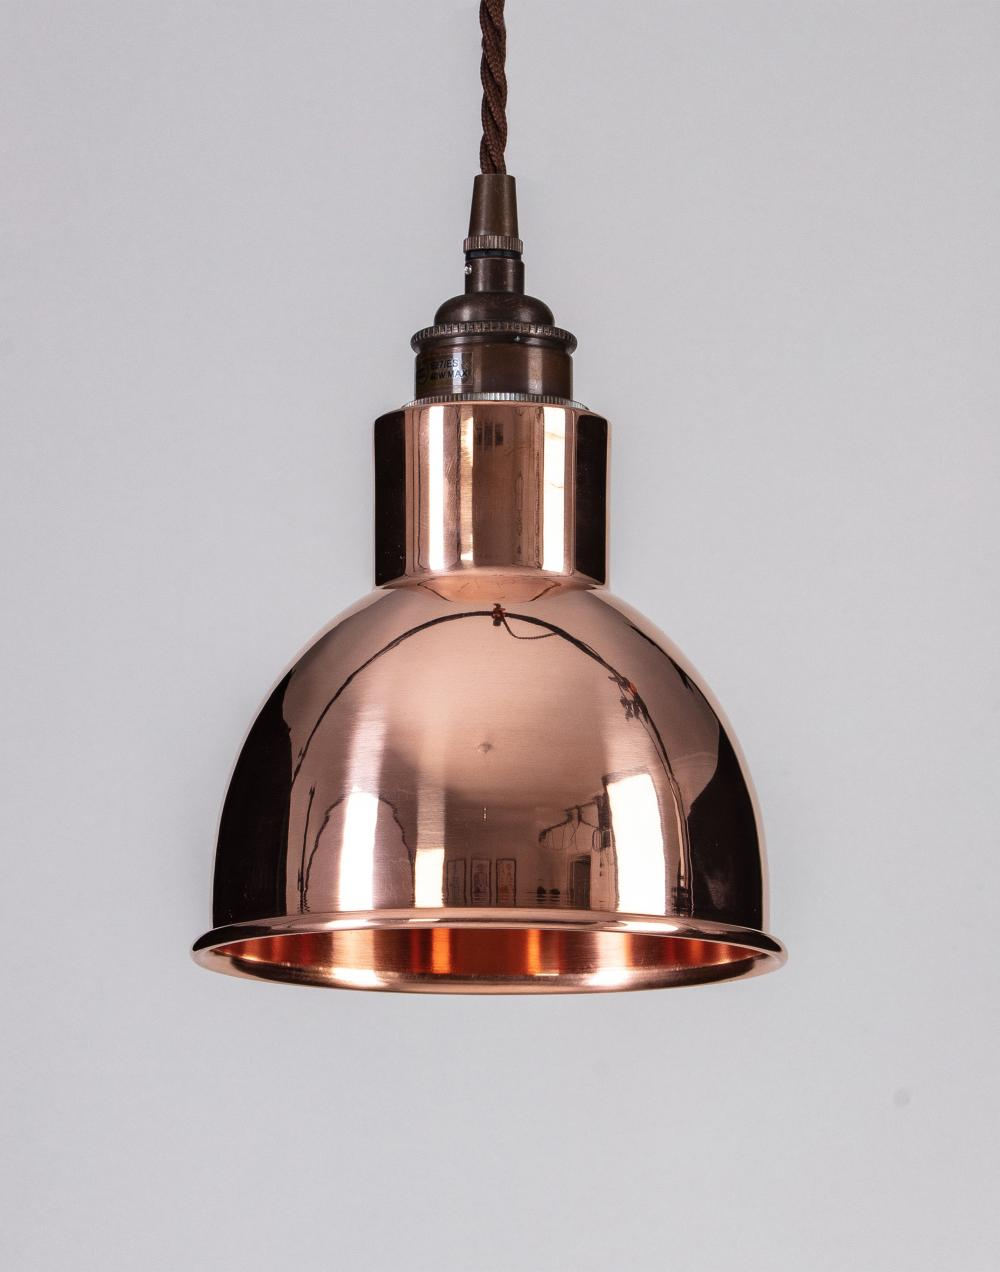 Old School Electric Churchill pendant - metal shades